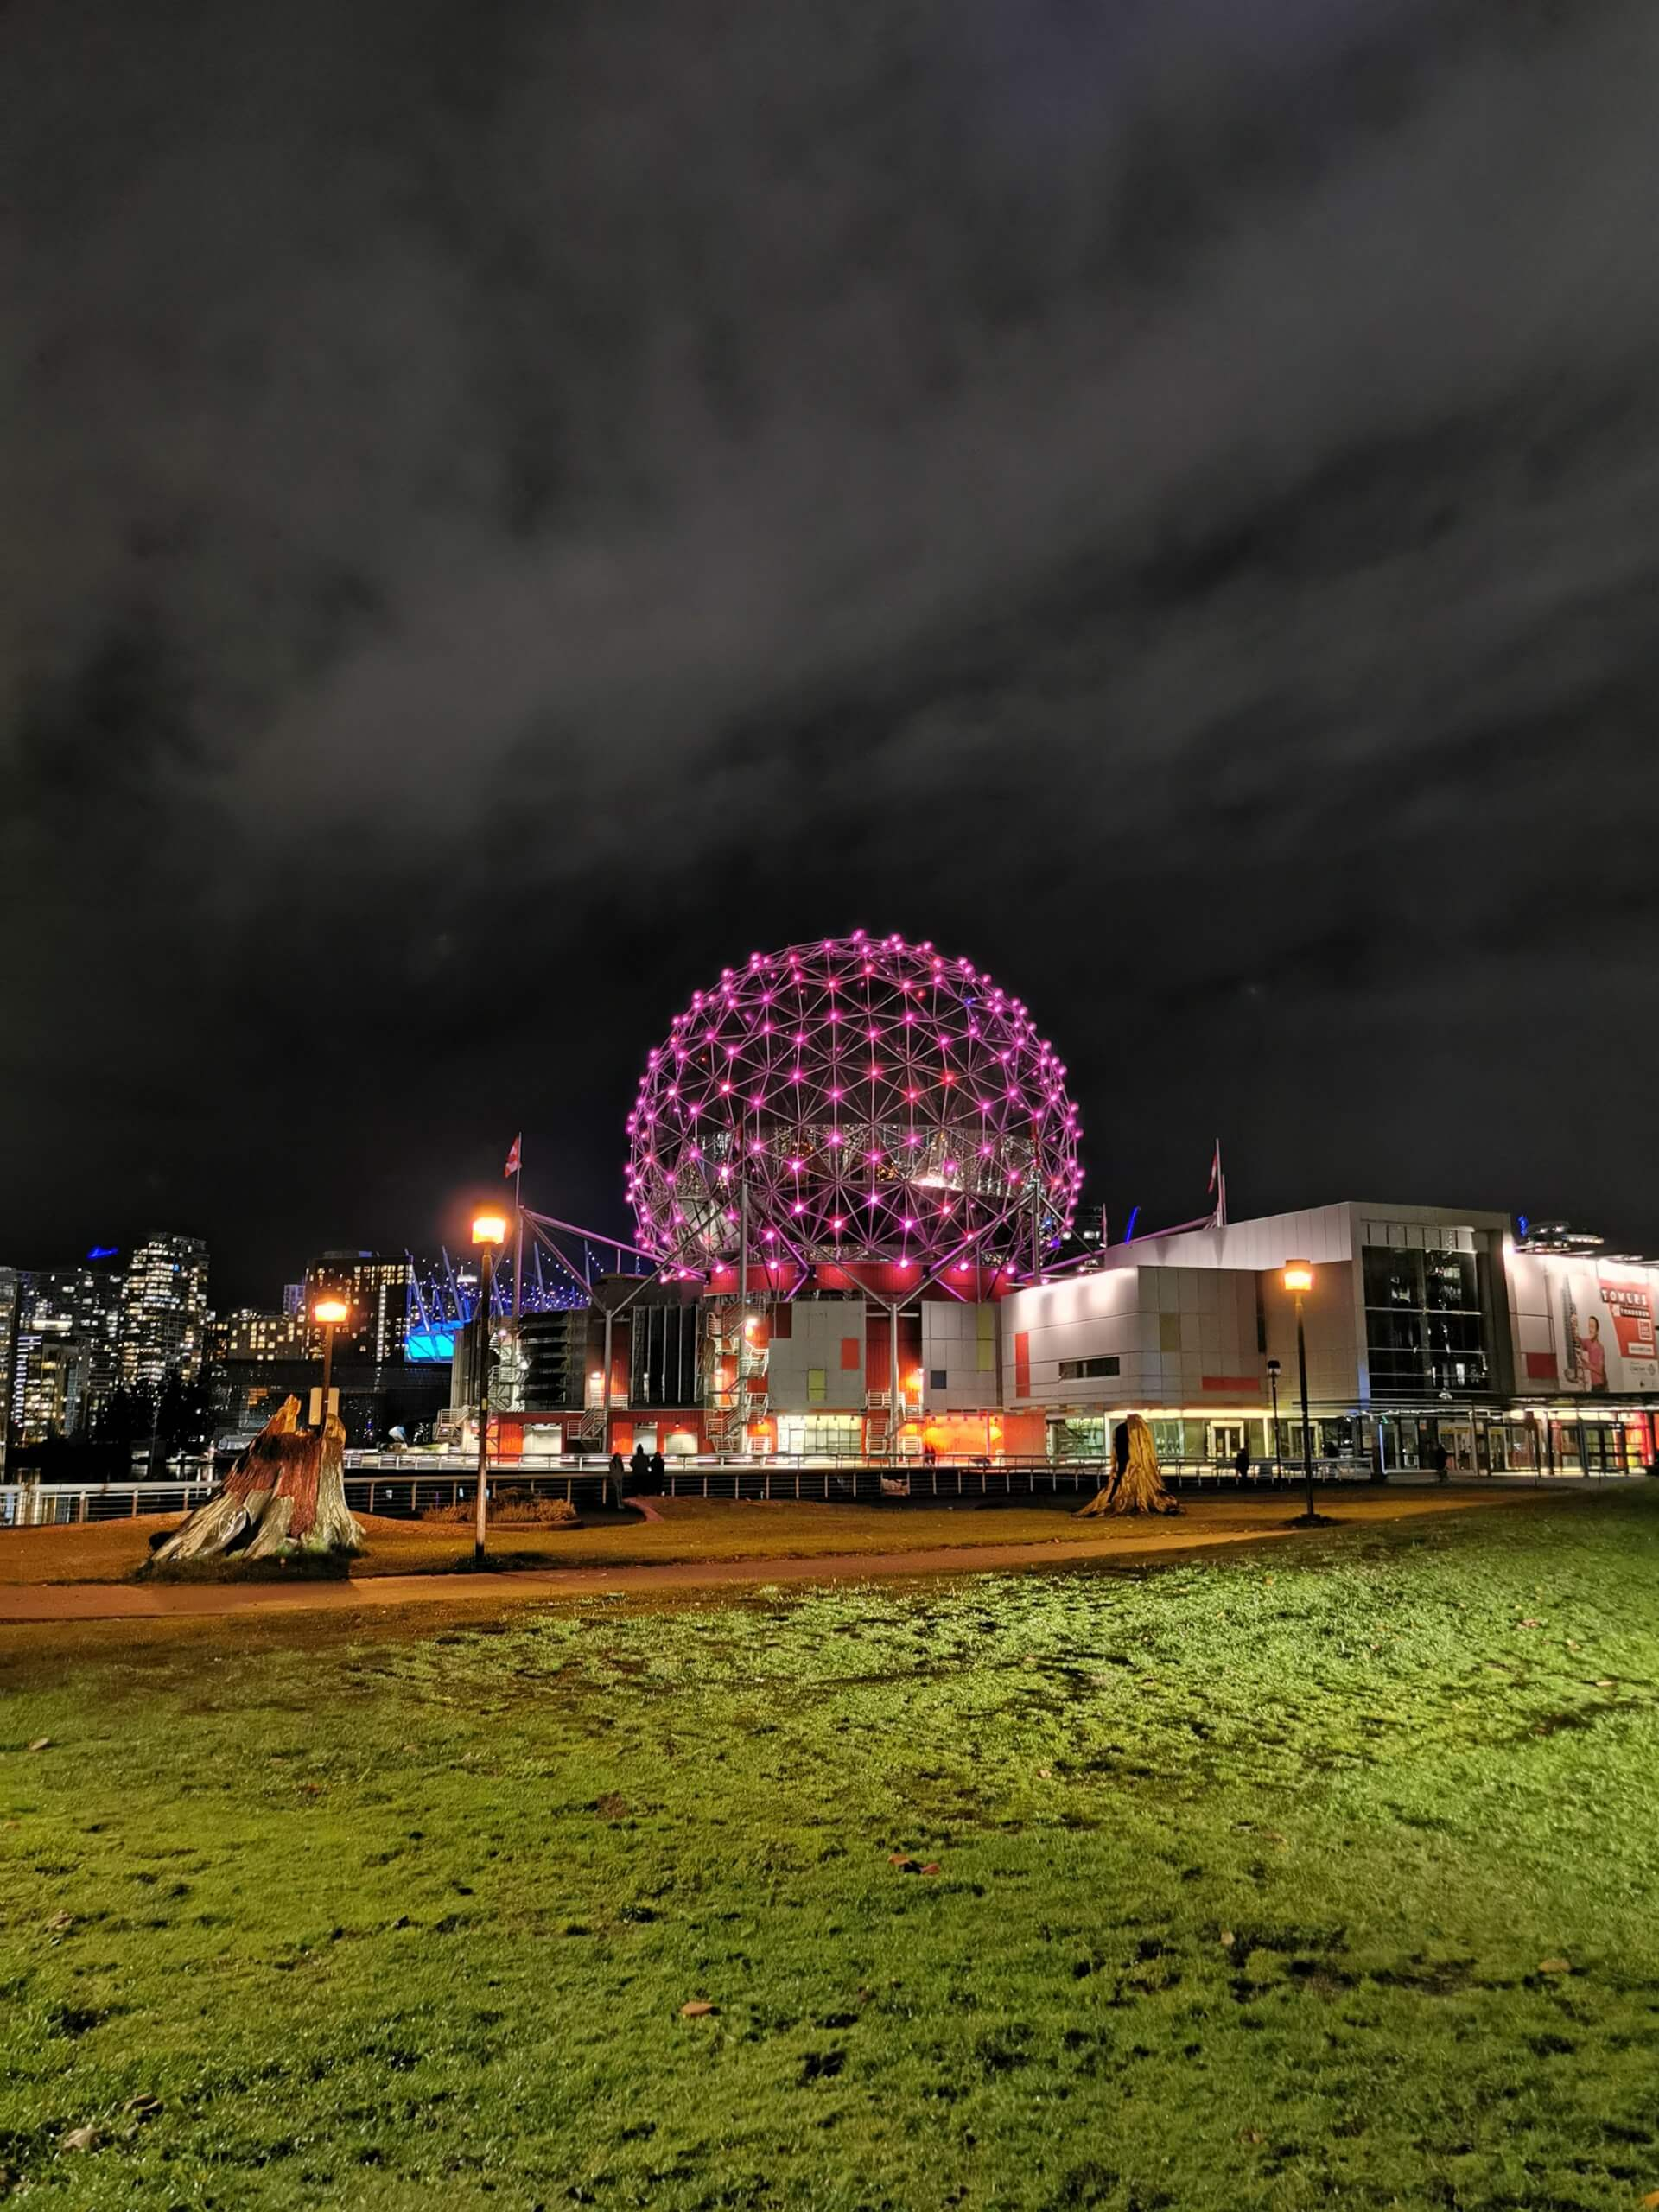 Science World lit up at night. JBB MONTHLY RECAP NOVEMBER 2020